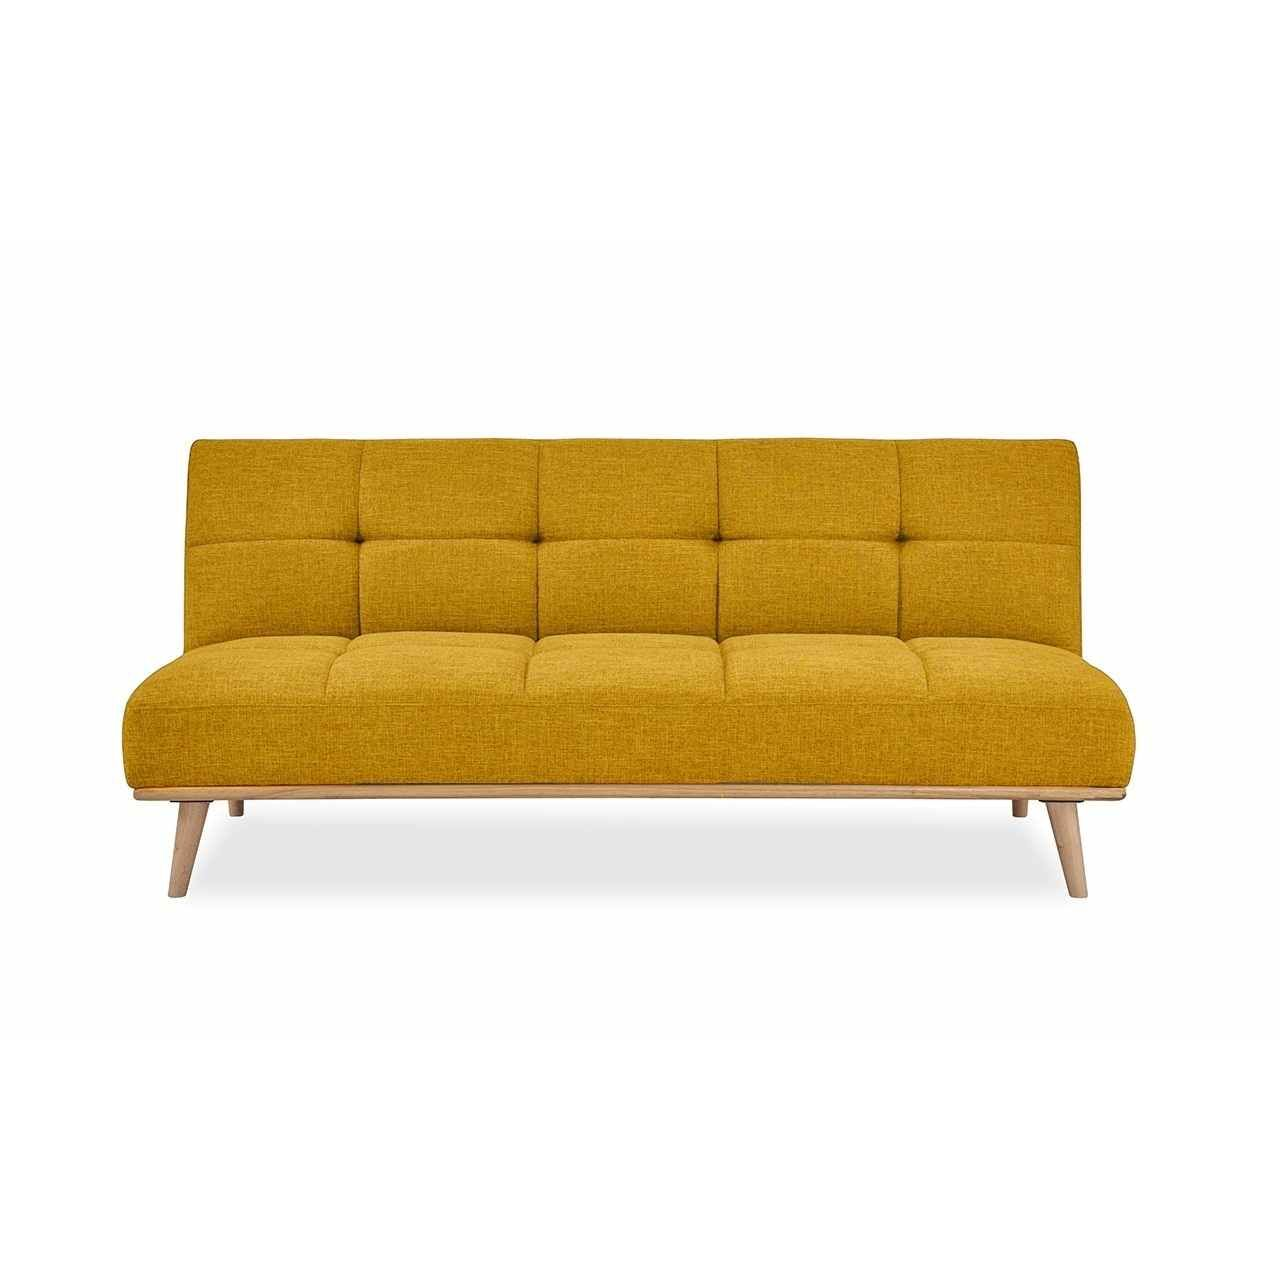 Deco Scandinave Jaune Deco In Paris 4 Banquette Clic Clac Scandinave 3 Places